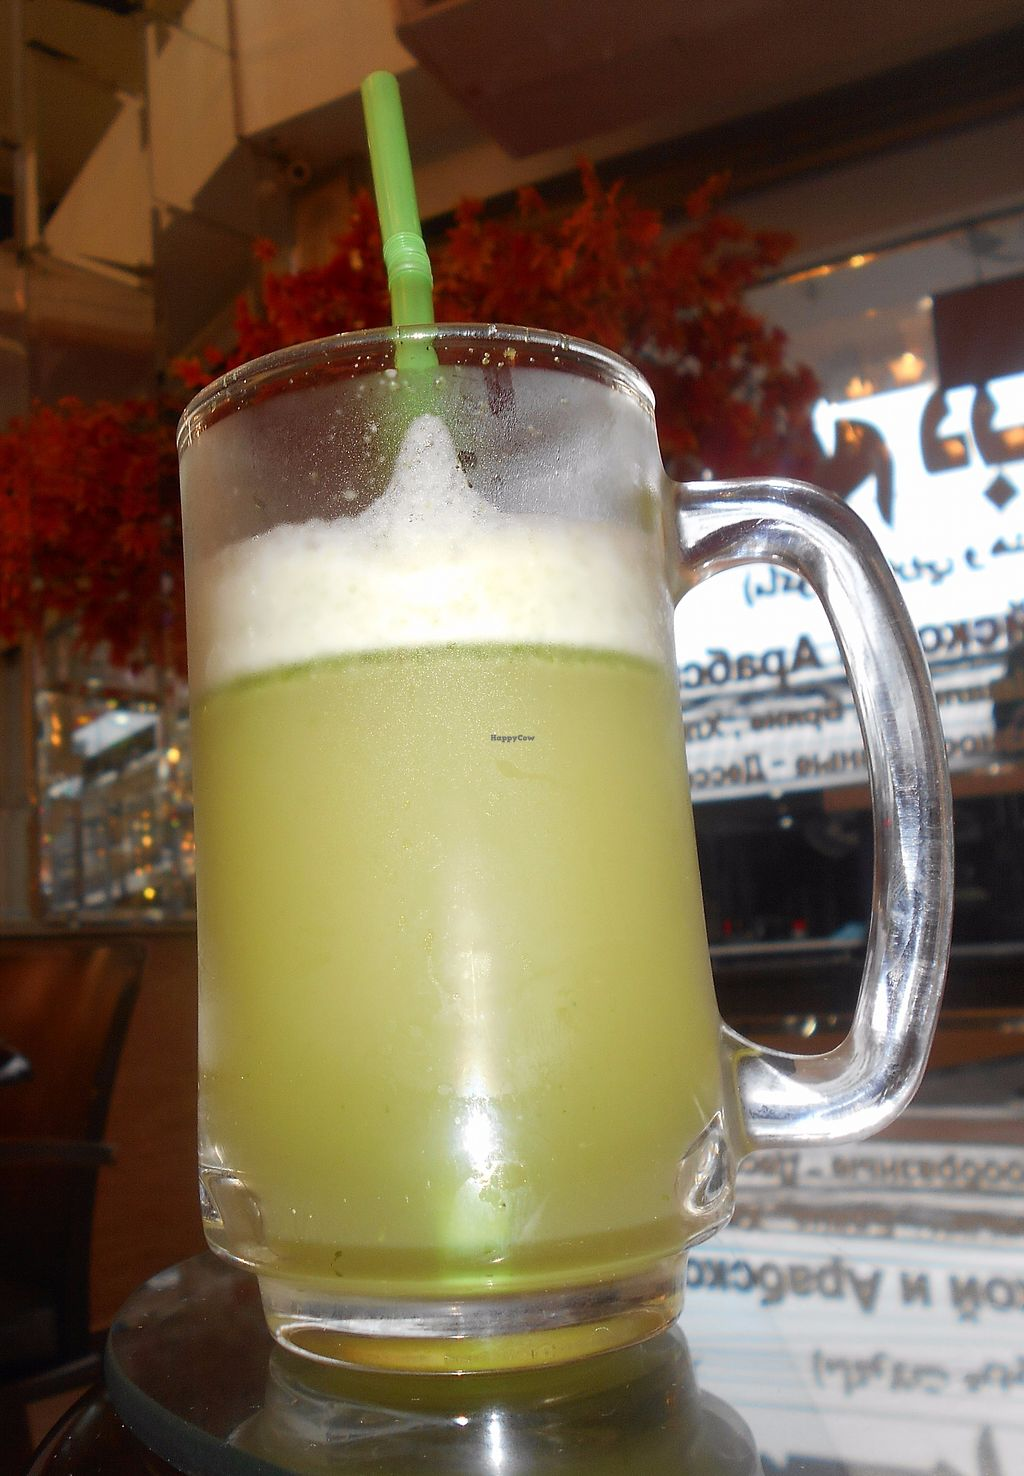 """Photo of Dubai Indian and Arabic Restaurant  by <a href=""""/members/profile/Kelly%20Kelly"""">Kelly Kelly</a> <br/>Dubai Indian and Arabic Restaurant (Formerly Al Diwan) 3 - Lemon Mint Juice!!! Fantastic flavor!!! <br/> July 10, 2017  - <a href='/contact/abuse/image/80733/278856'>Report</a>"""